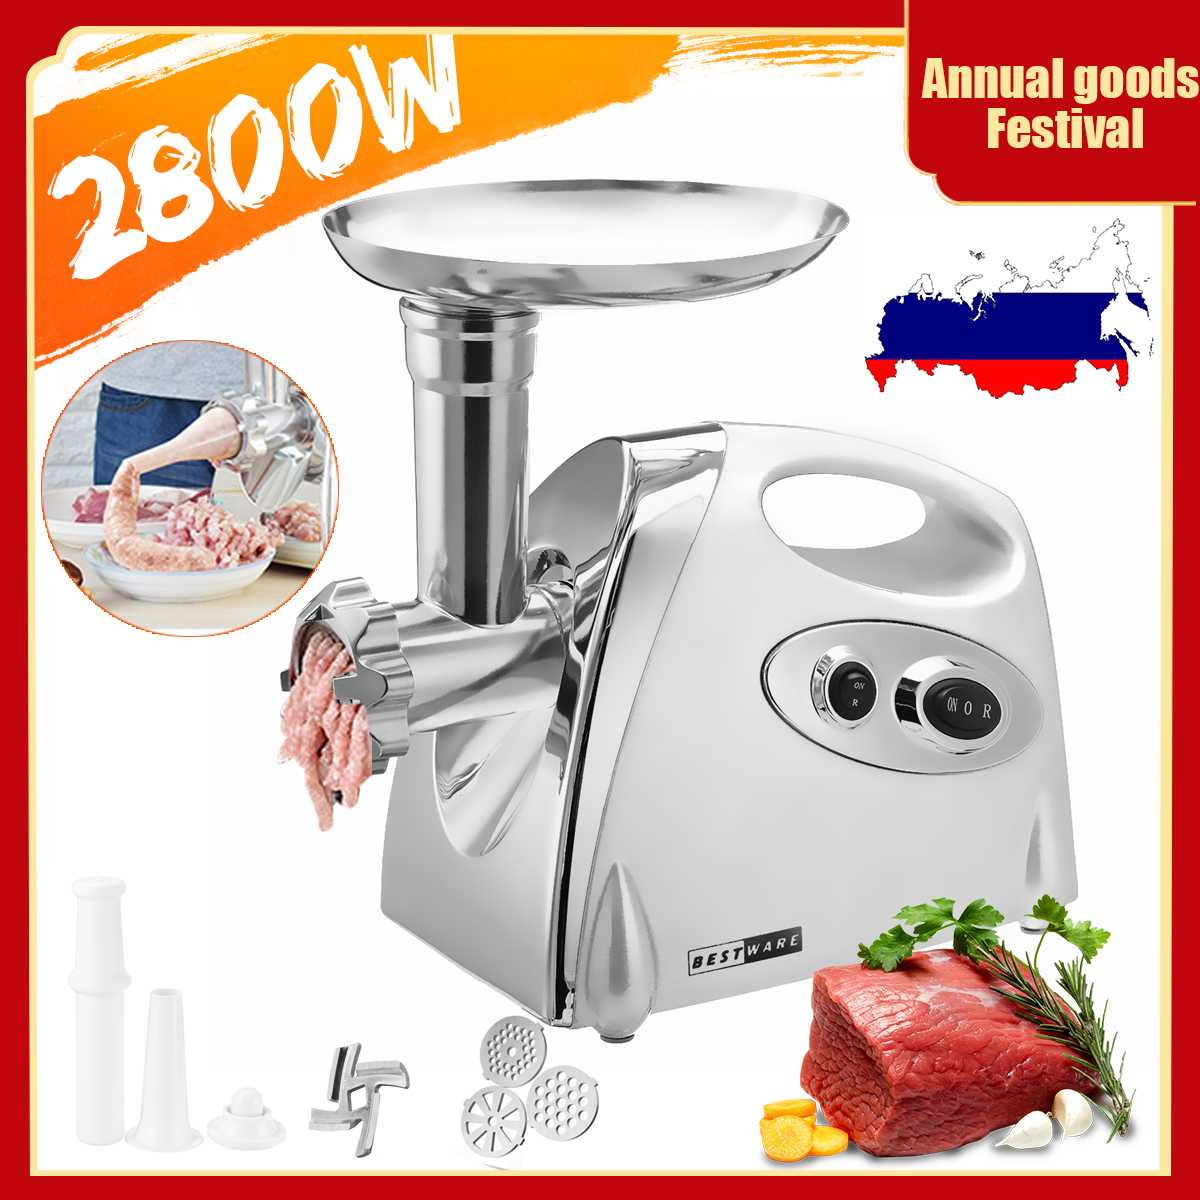 2800W Electric Meat Grinders Stainless Steel Powerful Electric Grinder Sausage Stuffer Meat Mincer Slicer For Kitchen Appliance